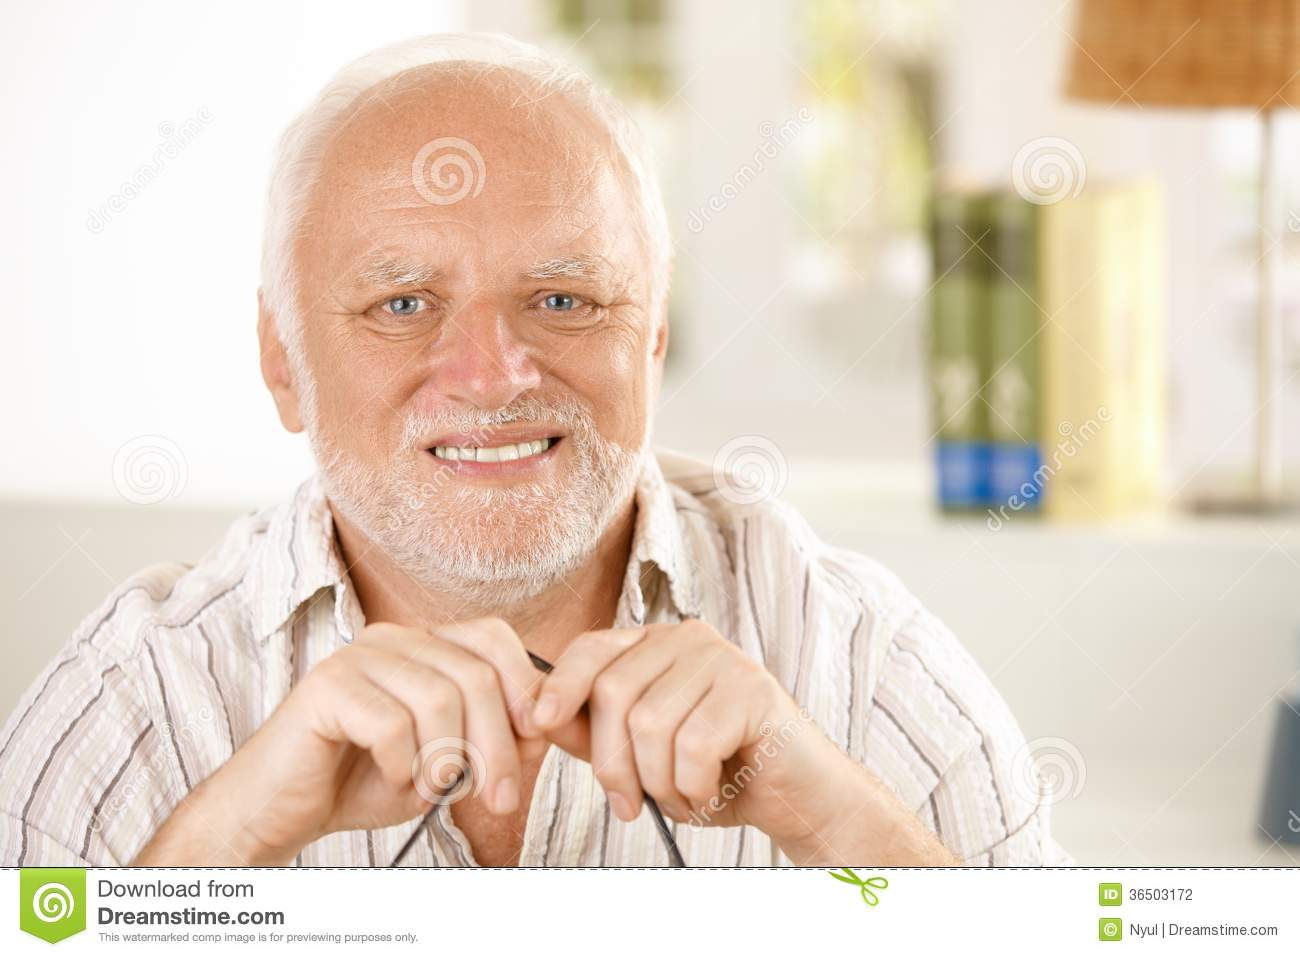 portrait-happy-old-man-smiling-looking-camera-36503172.jpg